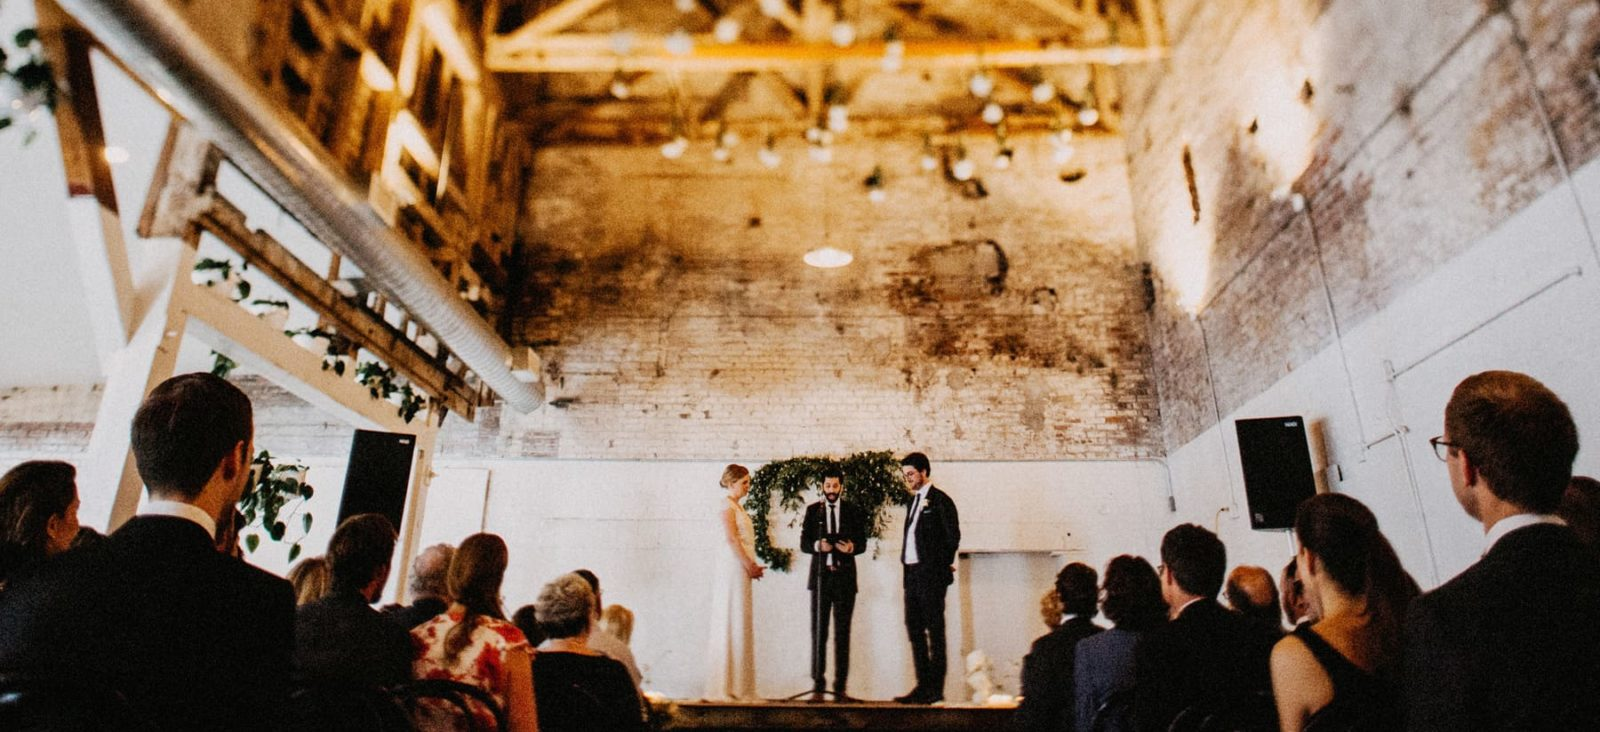 jacobsen salt wedding venue in Portland, Oregon